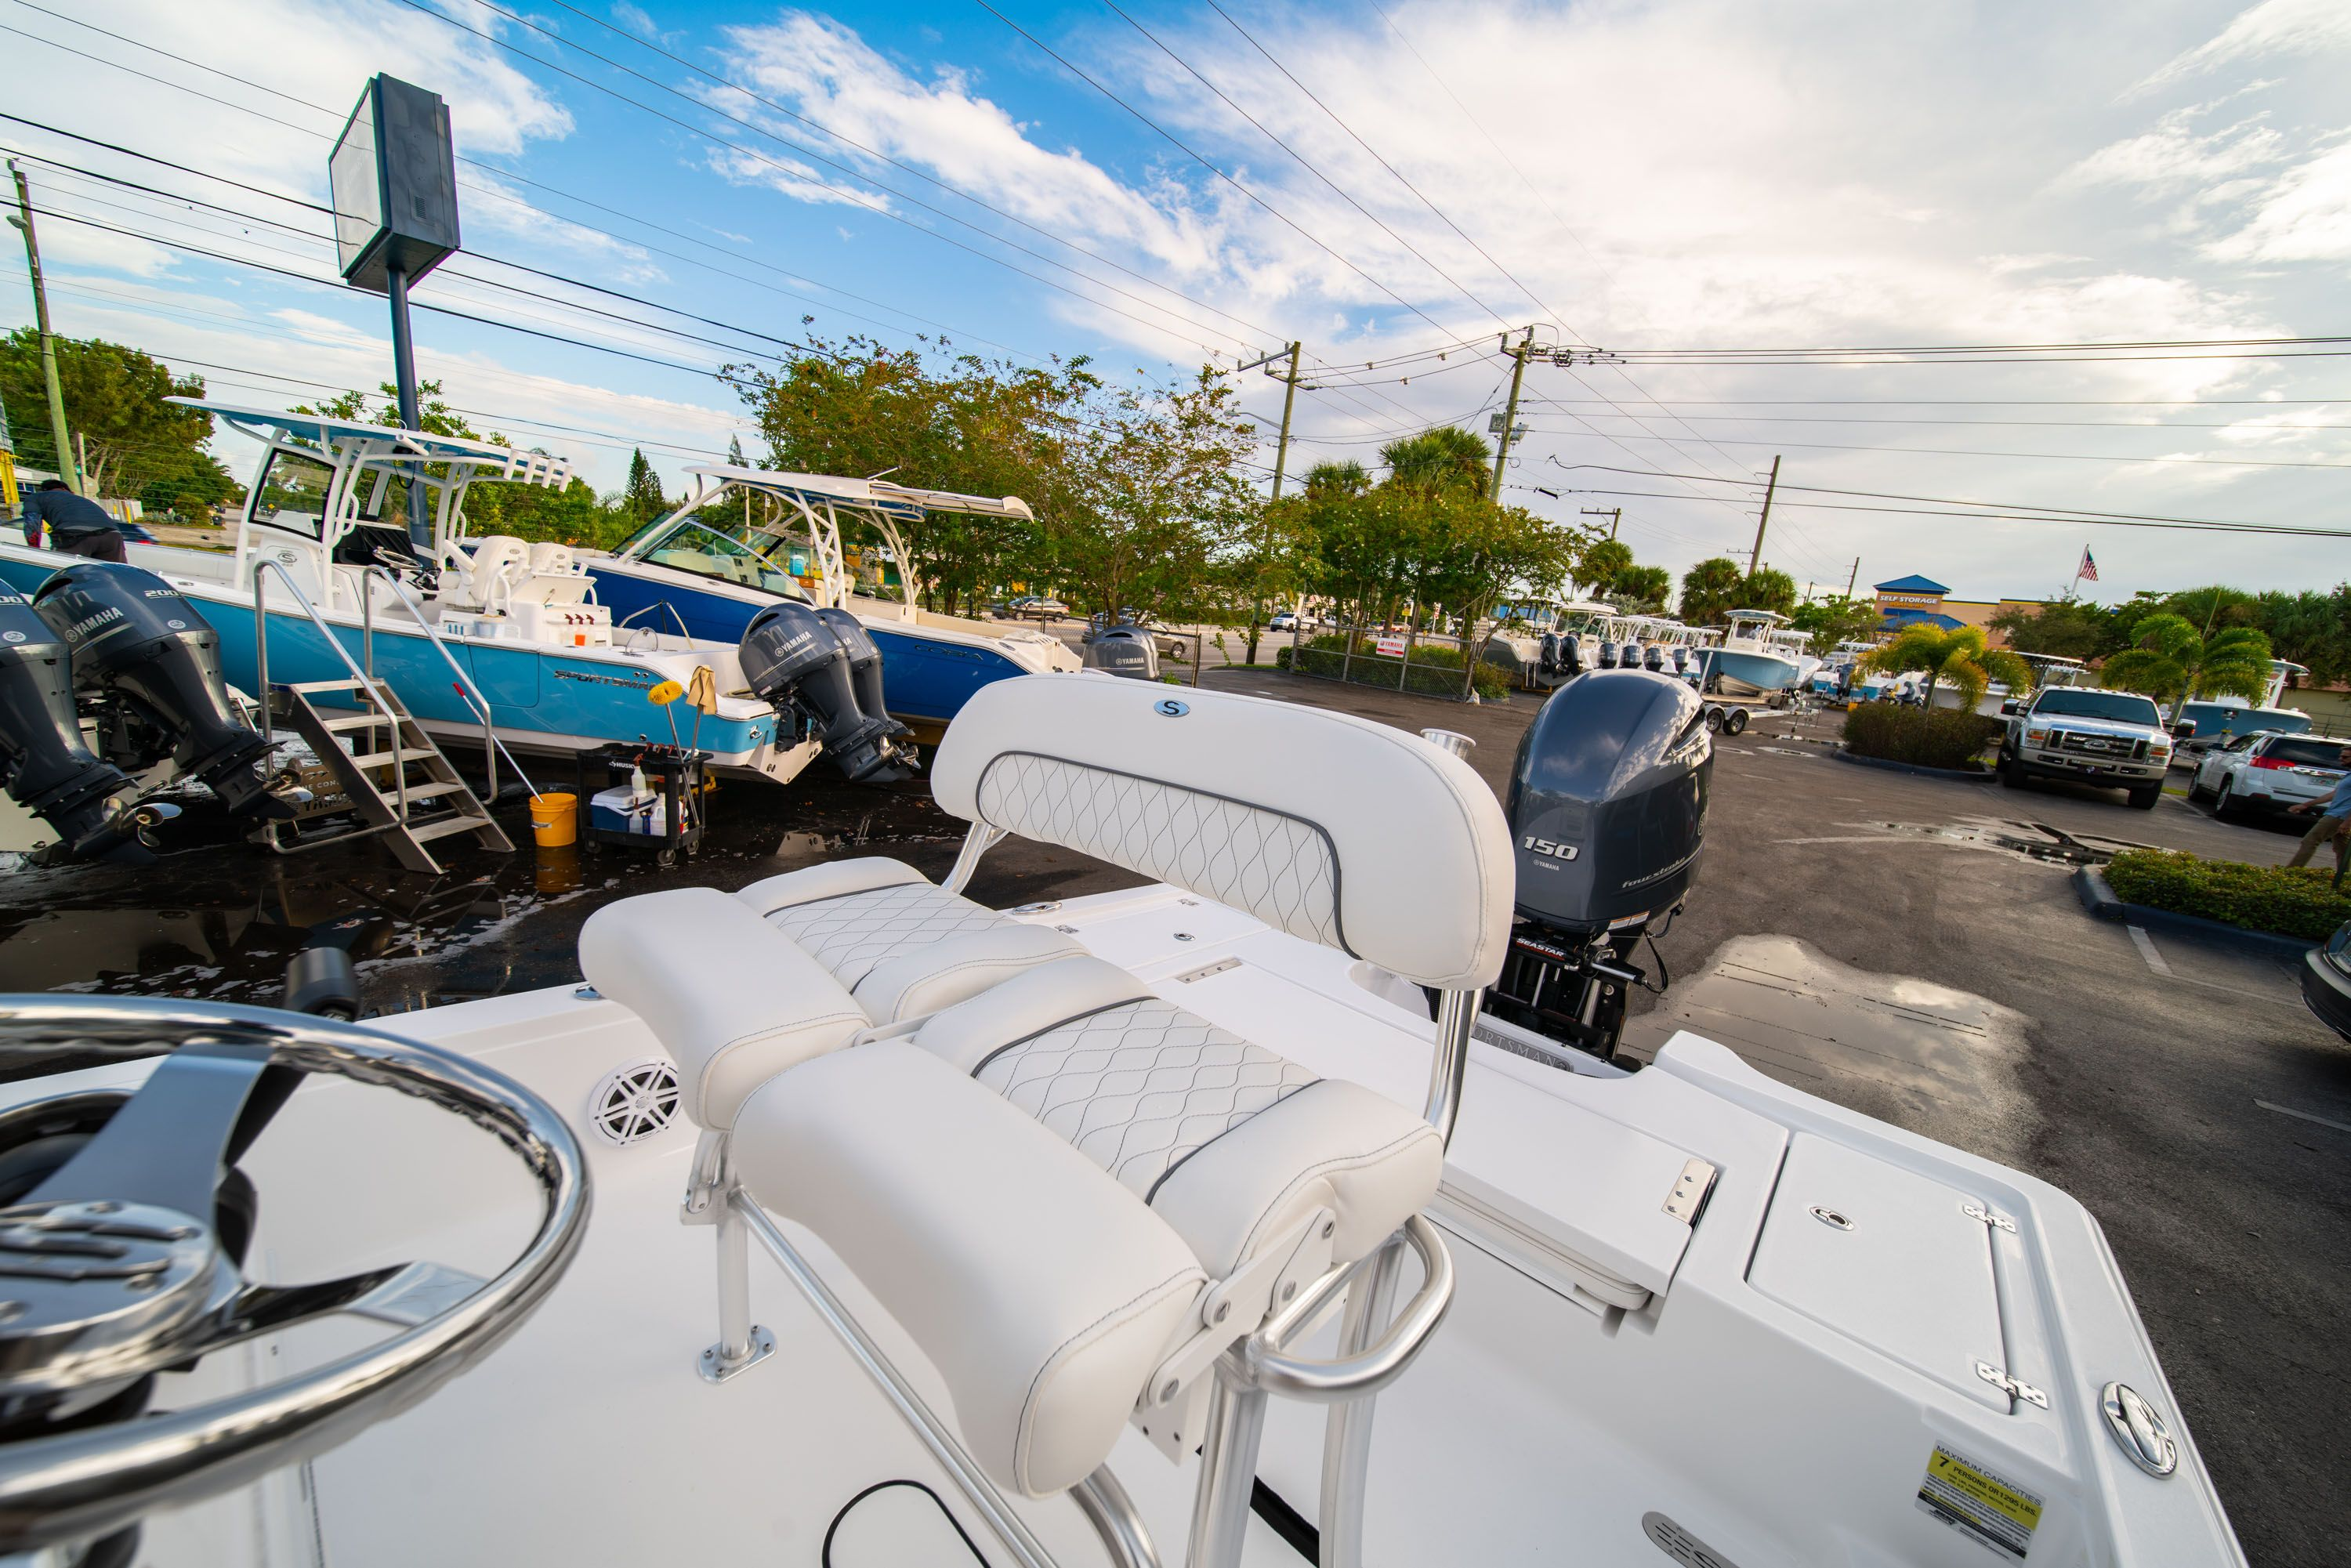 Thumbnail 25 for New 2020 Sportsman Tournament 214 Bay Boat boat for sale in West Palm Beach, FL